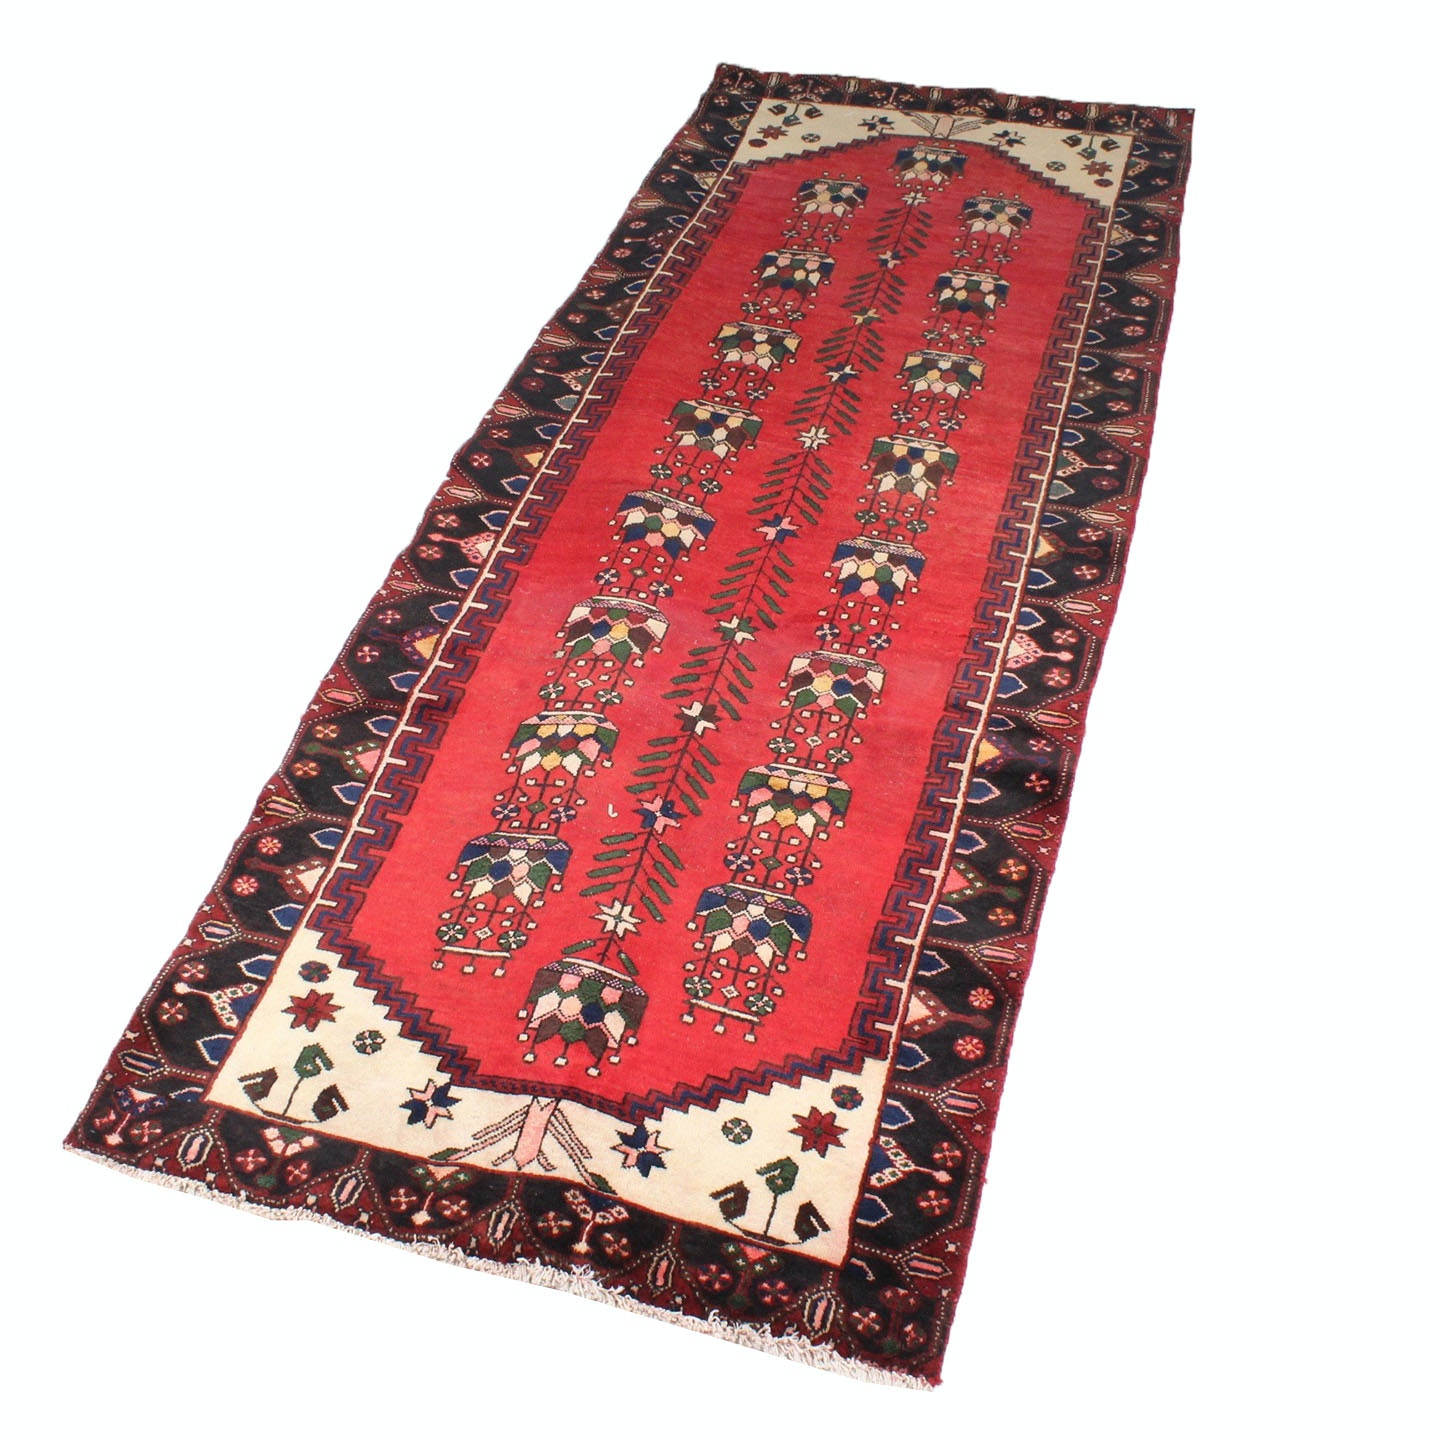 Vintage Hand-Knotted Northwest Persian Rug Runner